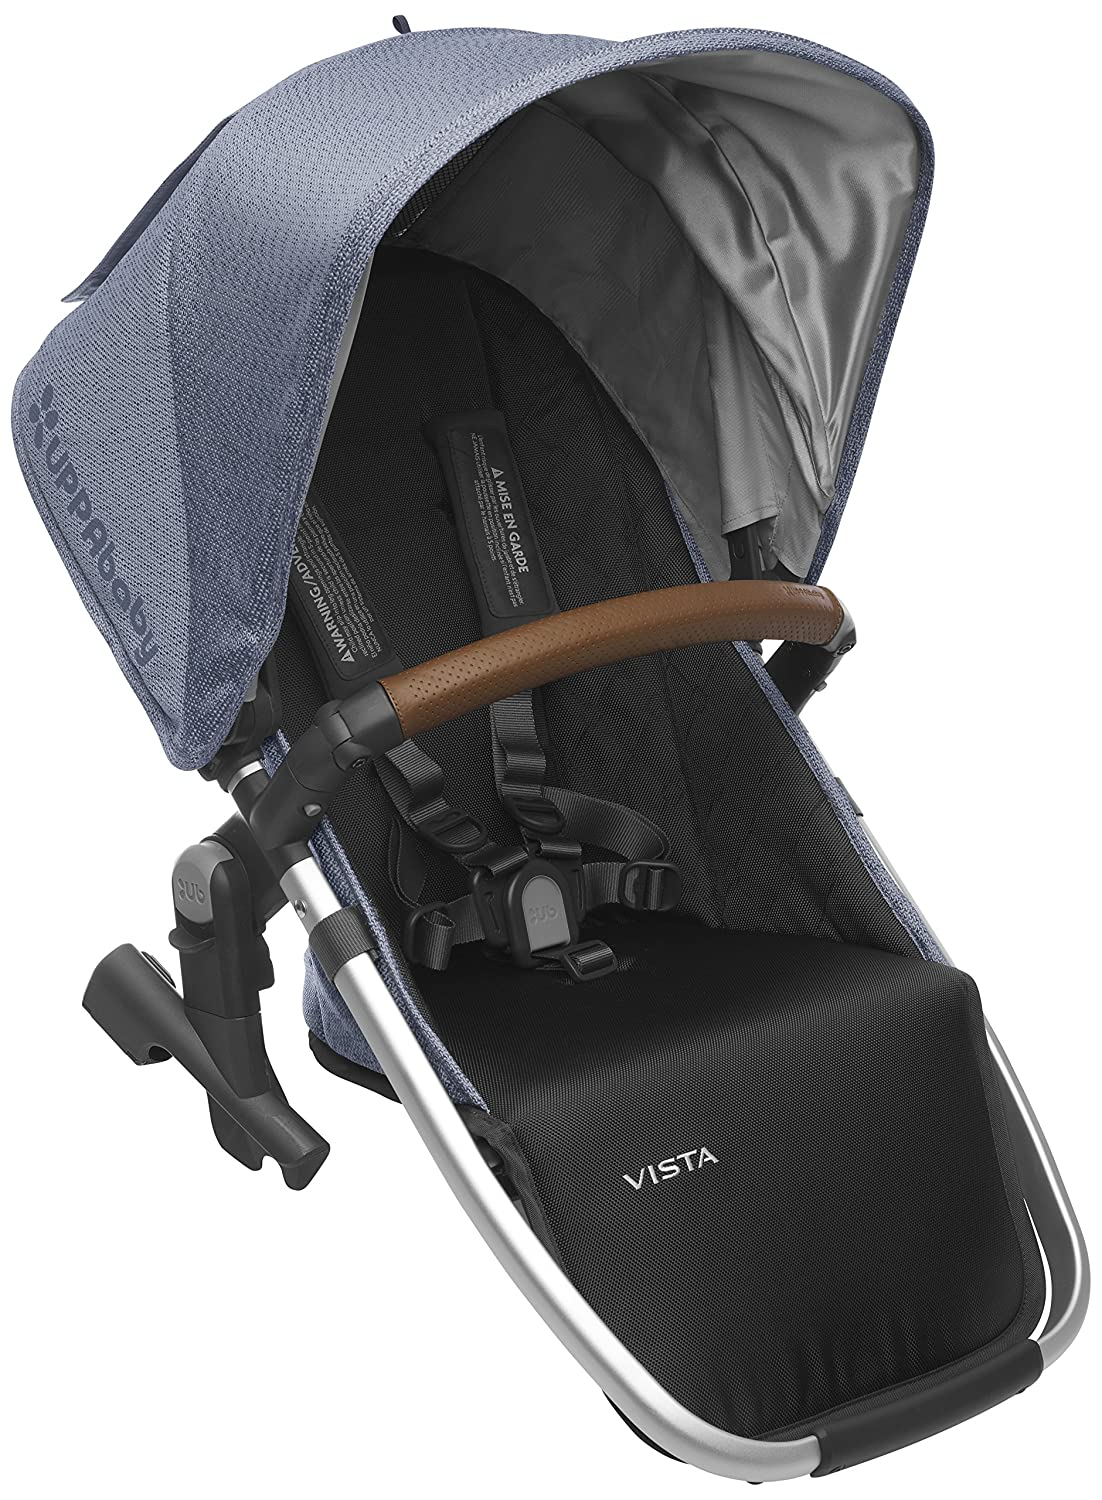 2018 UPPAbaby Vista RumbleSeat-Henry (Blue Marl/Silver/Saddle Leather) 91hsqXbIGGL._SL1500_